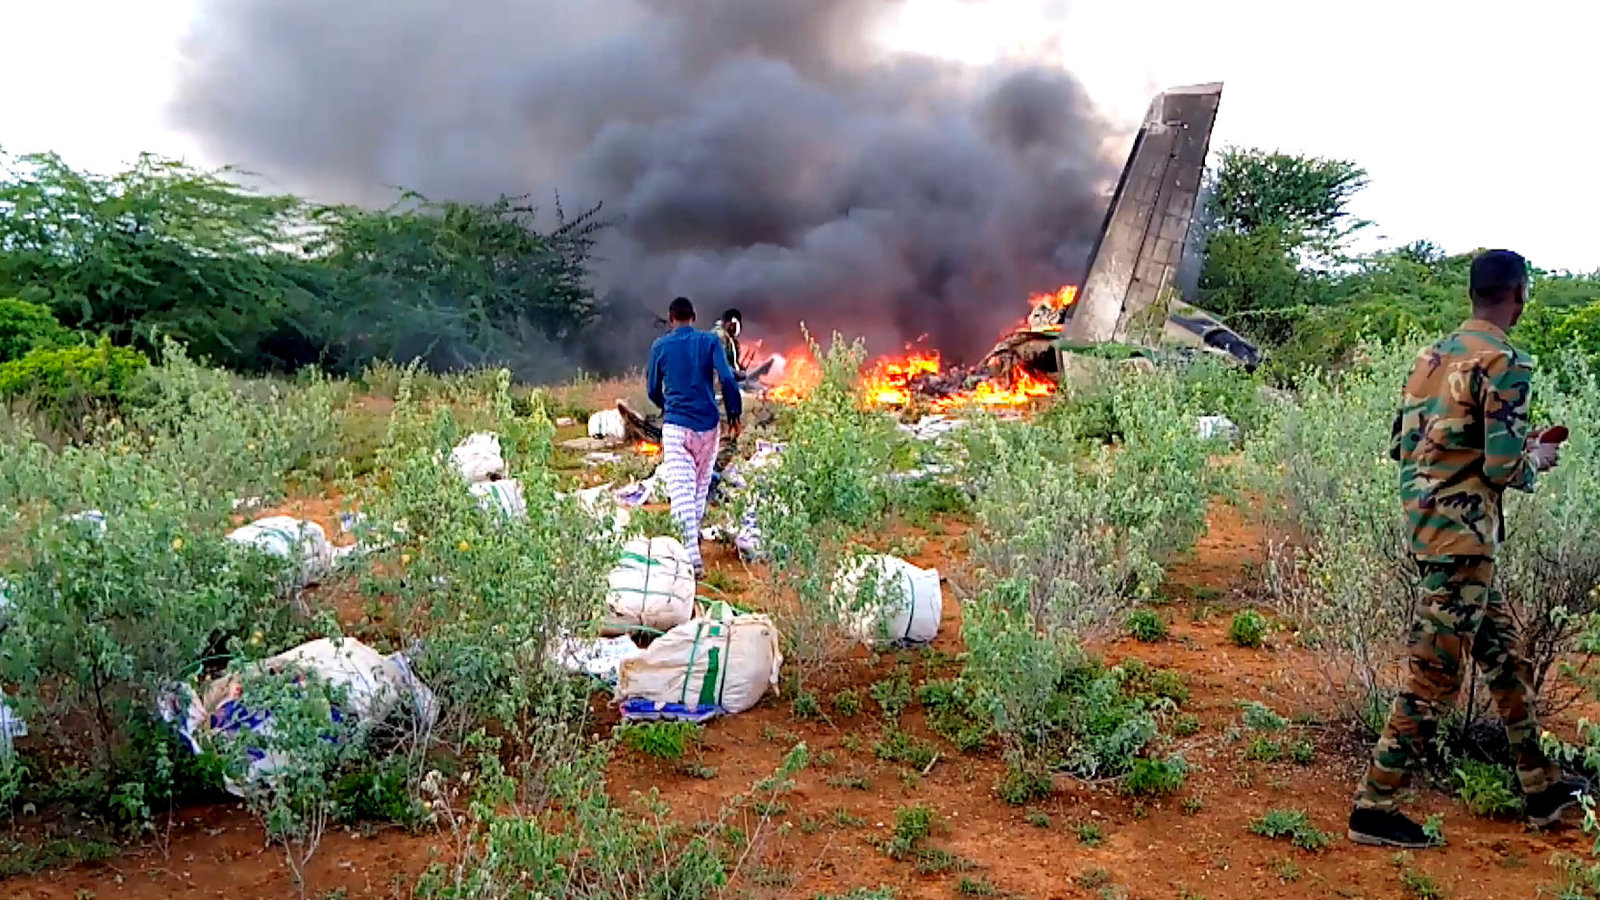 The site of a plane crash in the town of Bardale, Somalia, on Monday. The private cargo plane belonging to African Express Airways was carrying supplies for combatting the coronavirus pandemic.